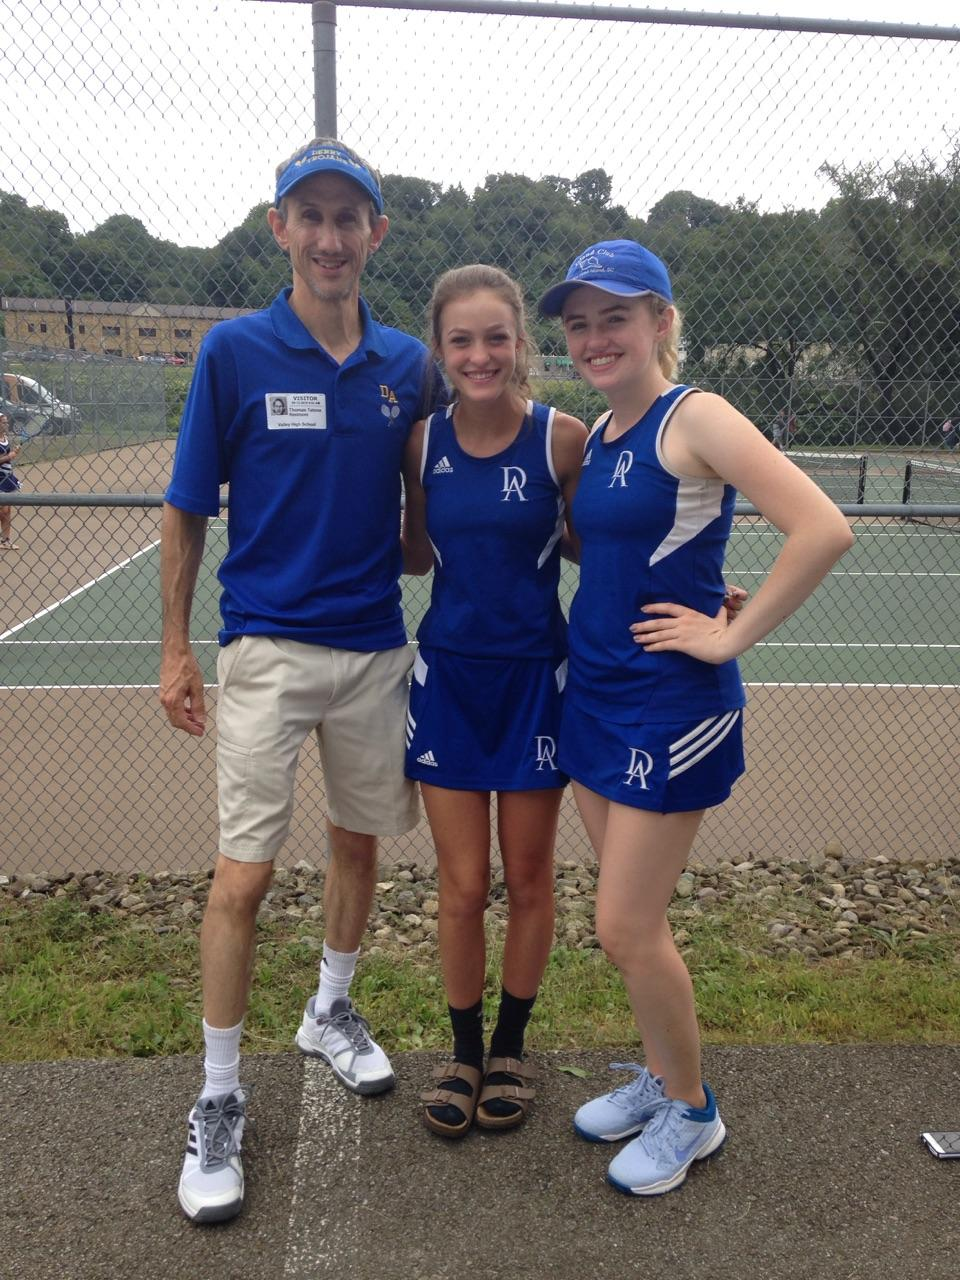 Sterrett and Tatone Represent Derry Area at WPIAL Tennis Section Singles, Tatone Advances to Compete for Third Place